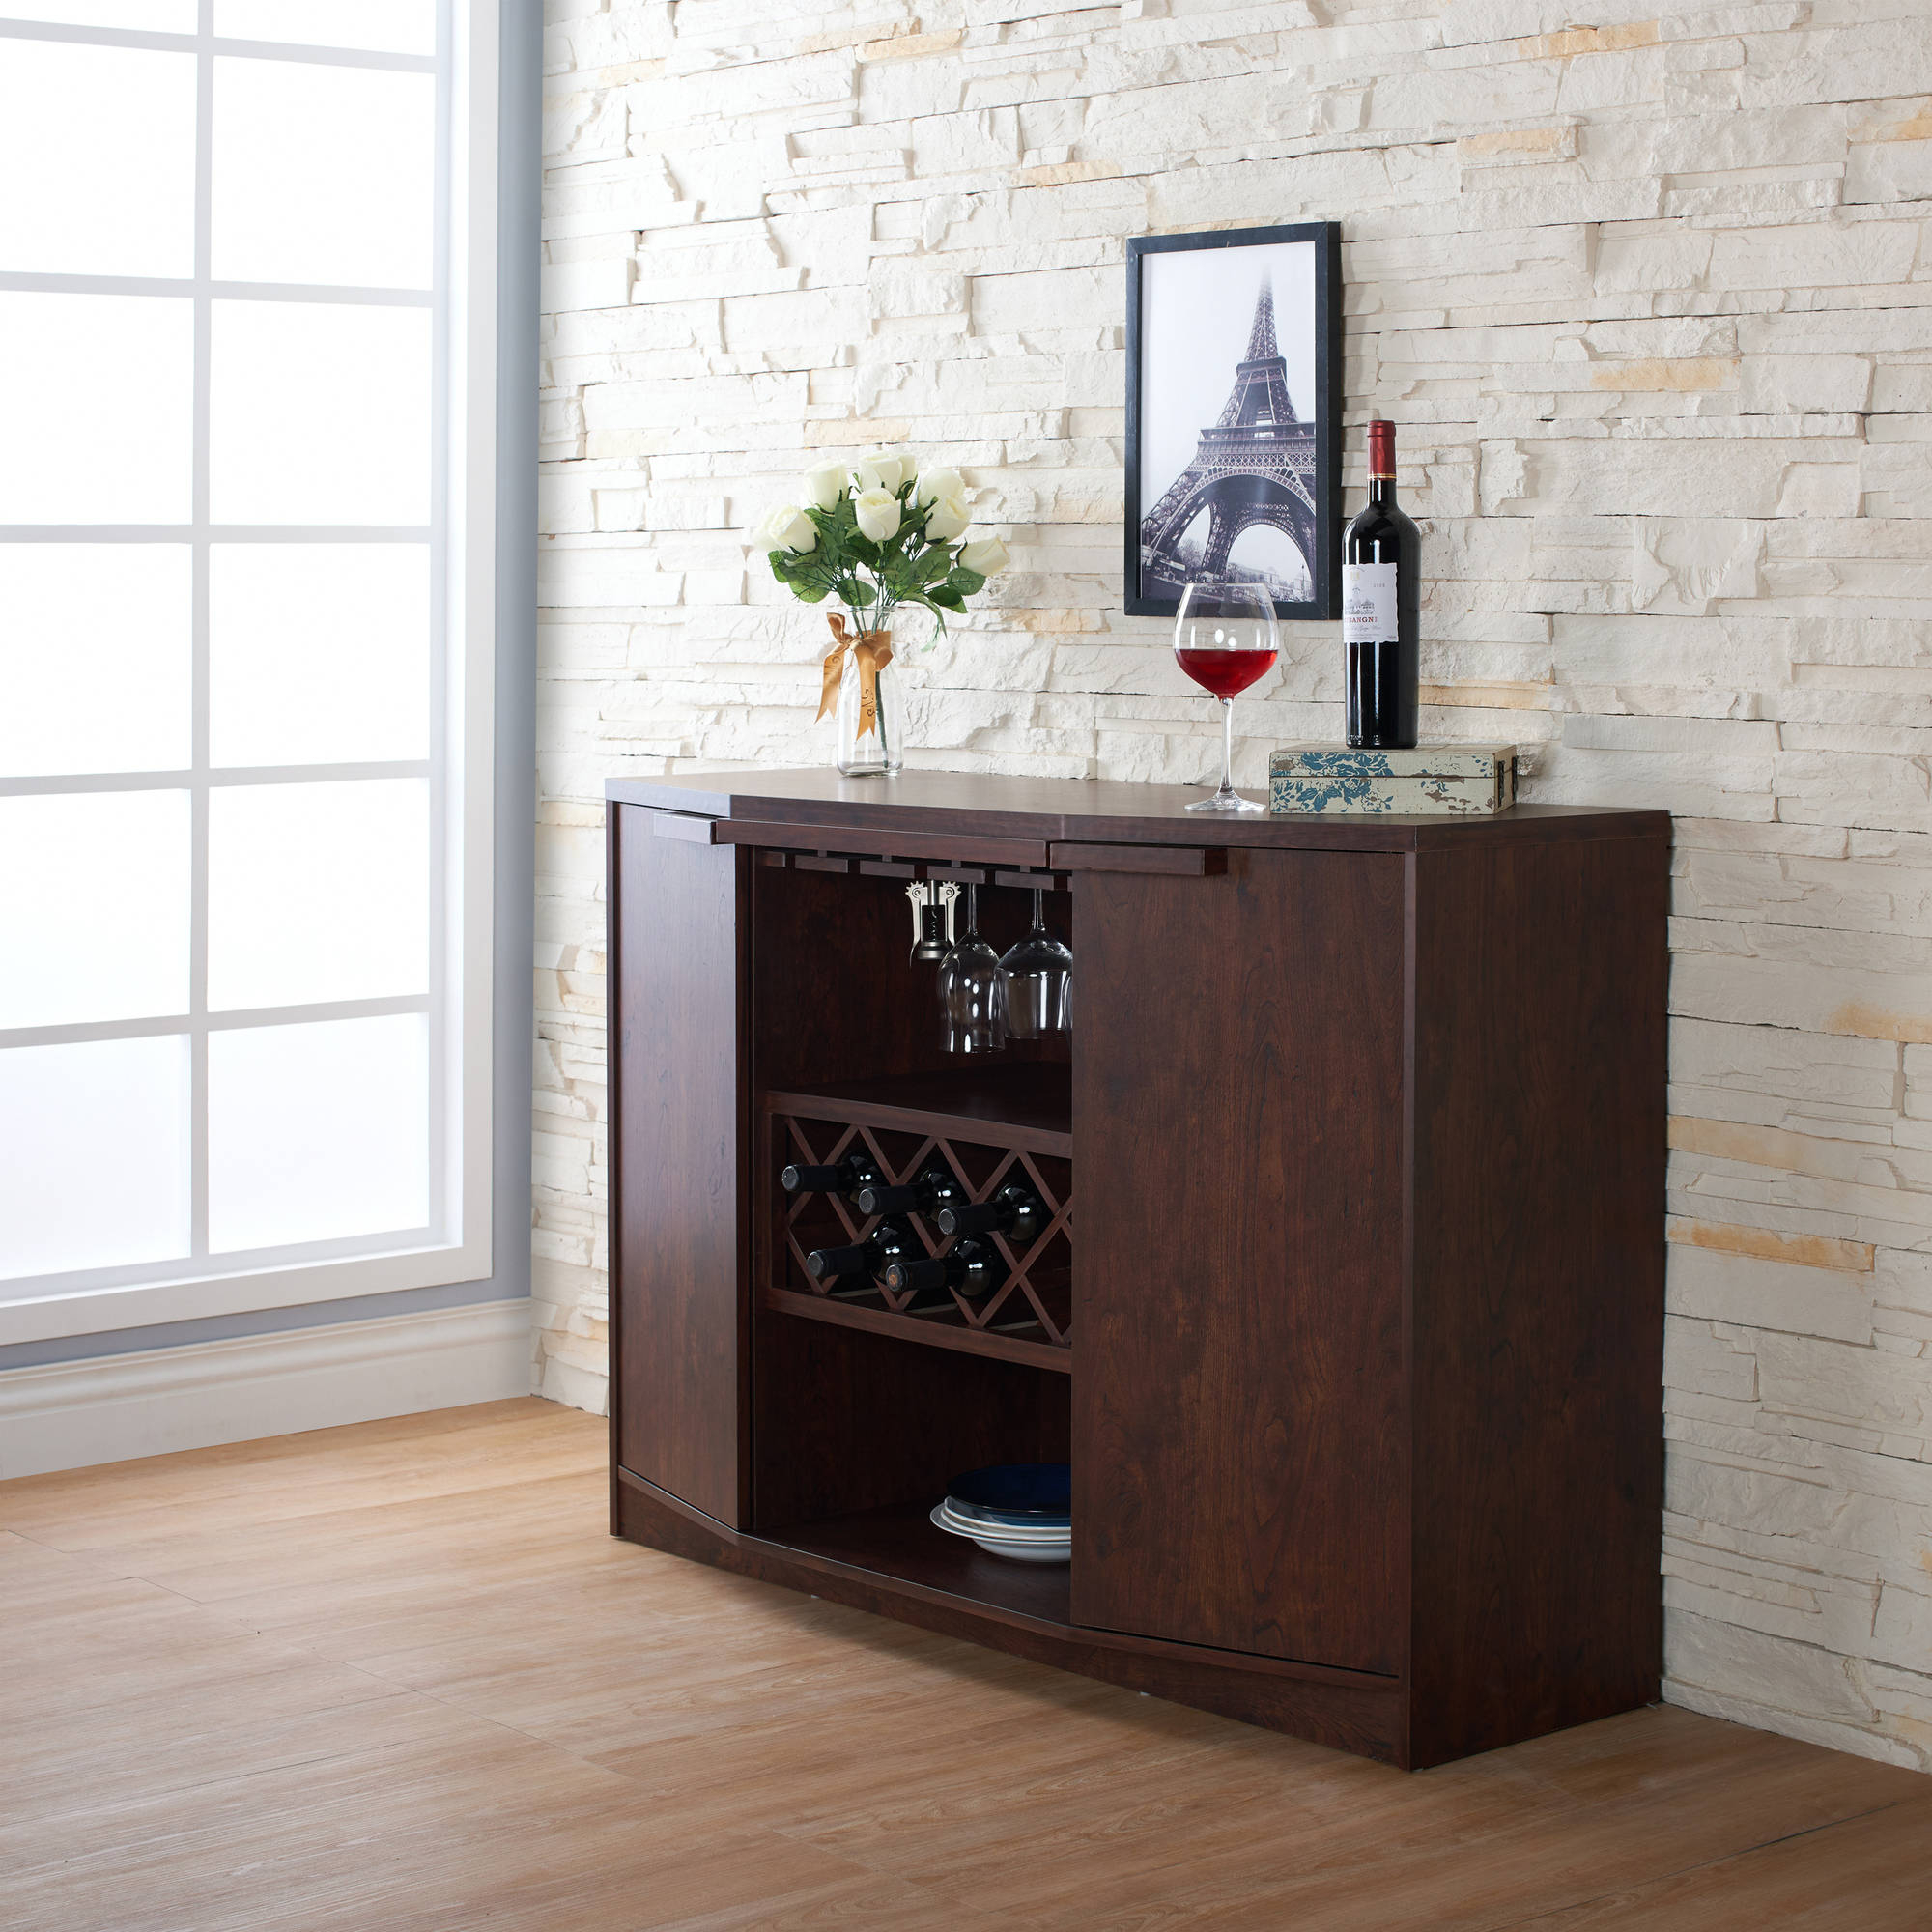 Furniture Of America Julian Modern Multi Storage Buffet, Vintage Walnut For Contemporary Multi Storage Dining Buffets (View 21 of 30)